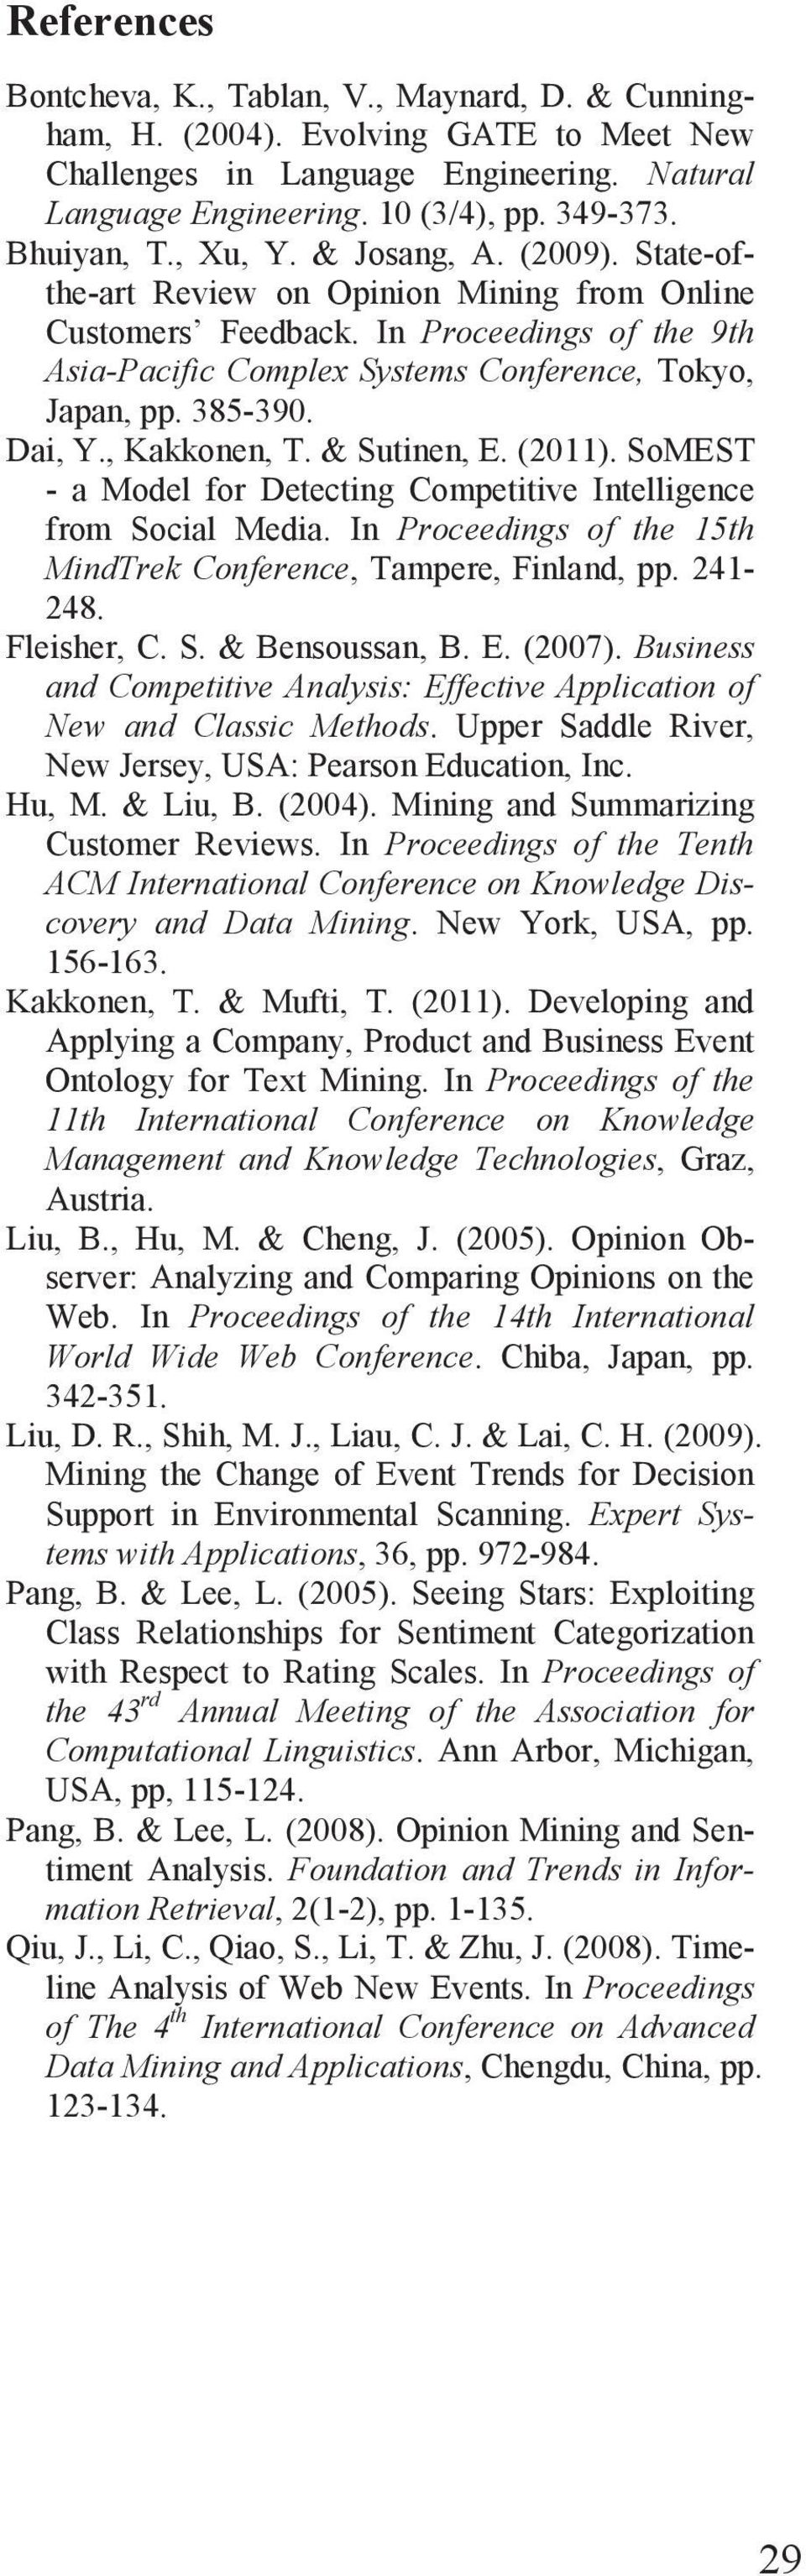 385-390. Dai, Y., Kakkonen, T. & Sutinen, E. (2011). SoMEST - a Model for Detecting Competitive Intelligence from Social Media. In Proceedings of the 15th MindTrek Conference, Tampere, Finland, pp.